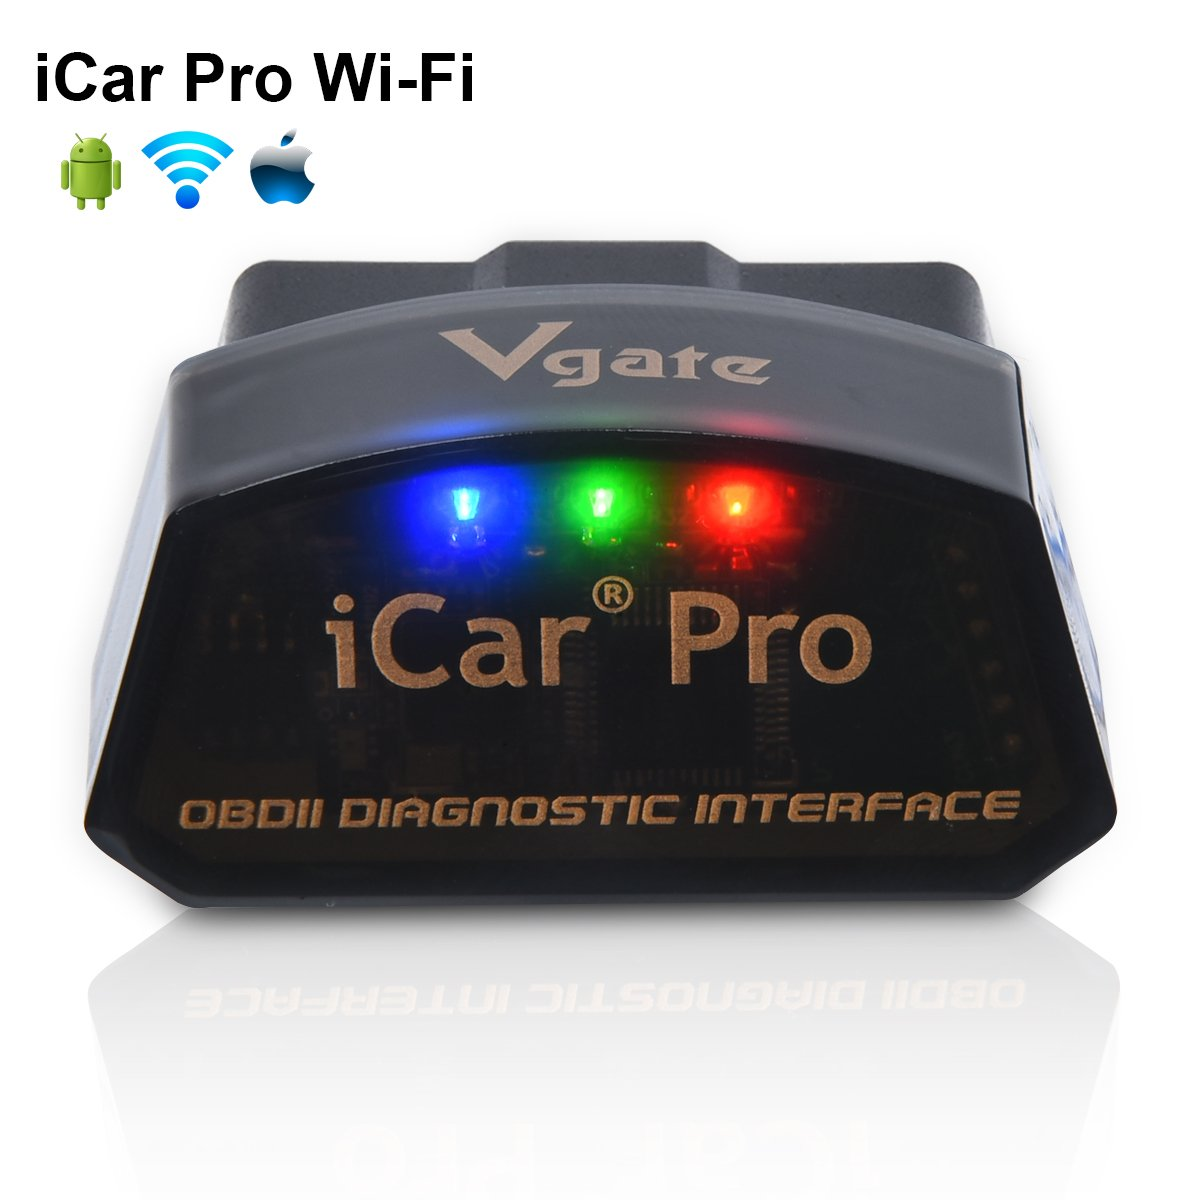 Vgate iCar Pro Bluetooth 4.0 (BLE) OBD2 Fault Code Reader OBDII Code Scanner Car Check Engine Light for iOS iPhone iPad/Android Compatible with ELM327 Adapter